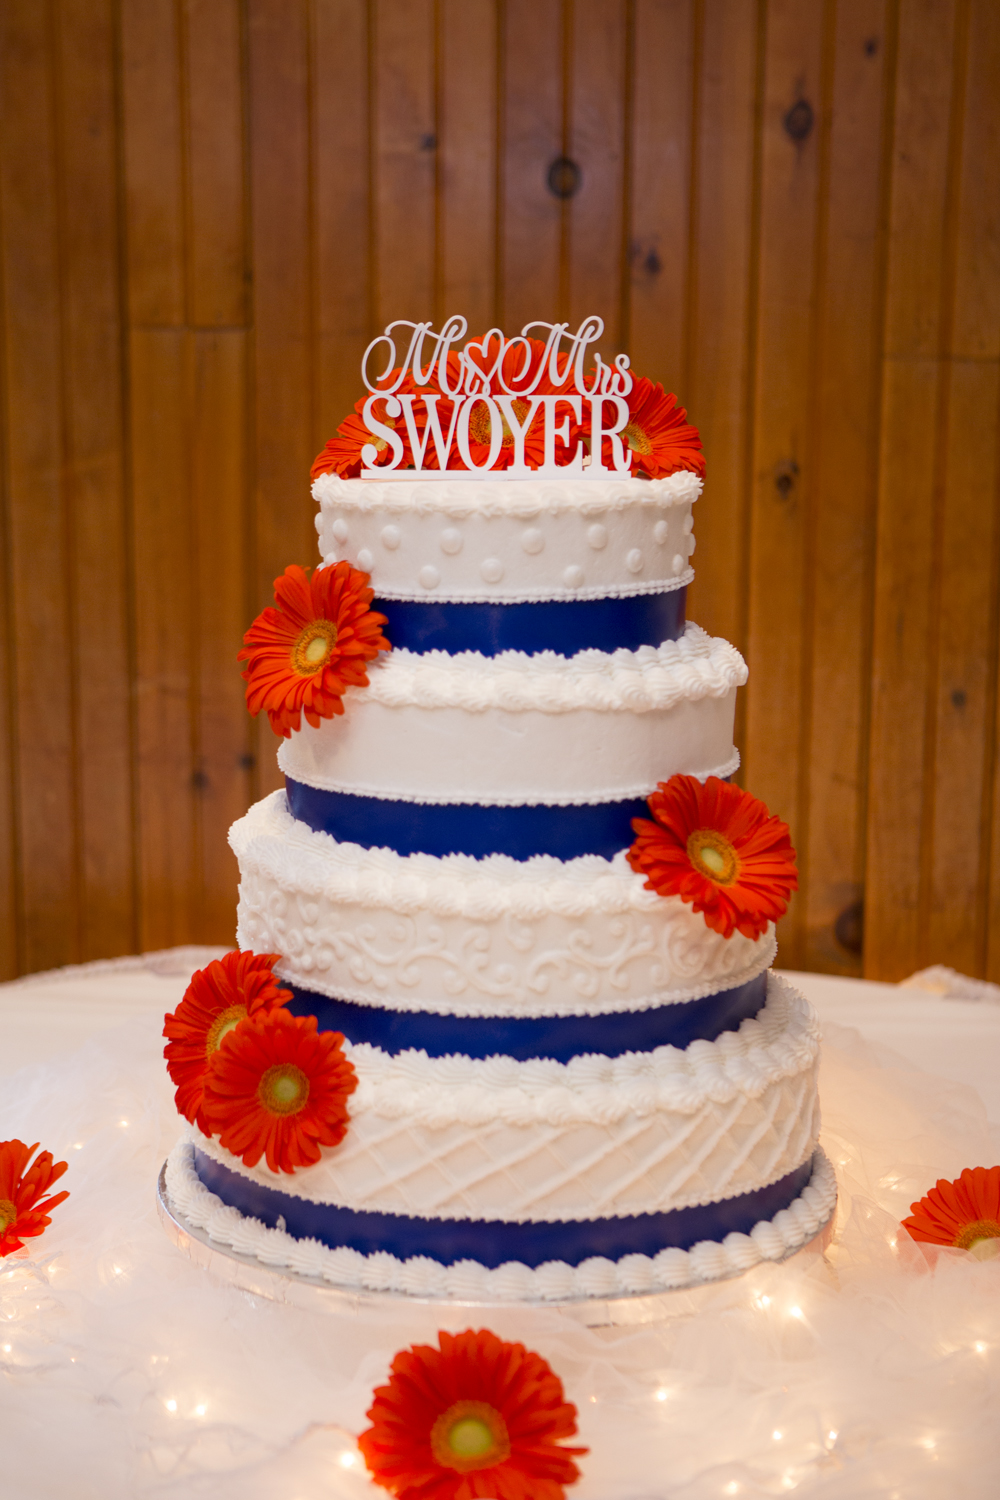 Wedding Photographer in Greensboro, NC - Wedding Cake